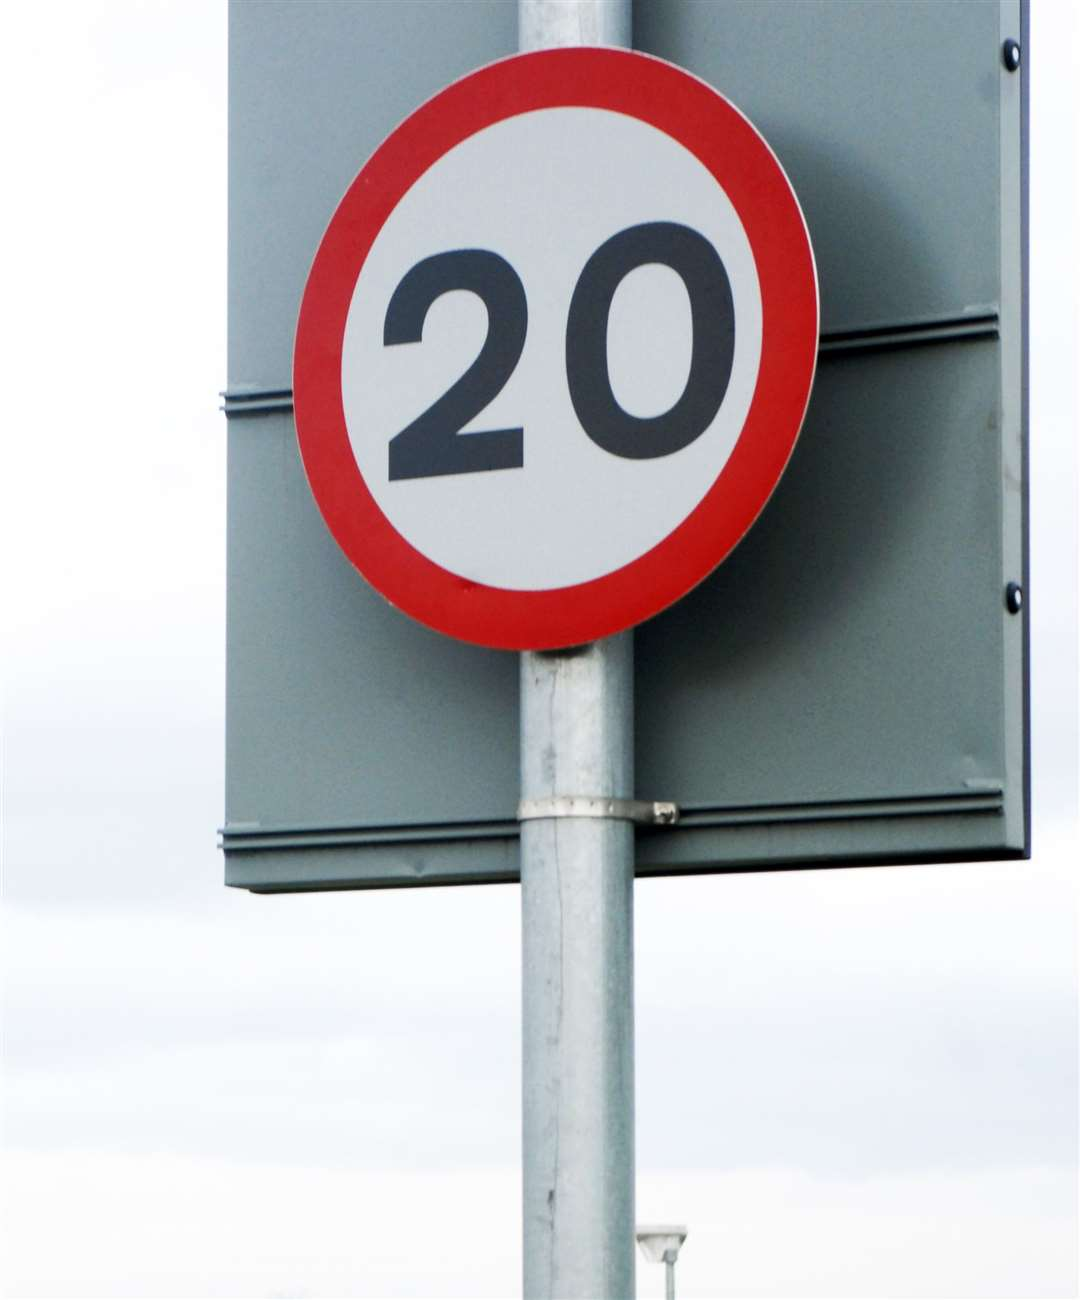 Introducing 20mph speed limits is a main part of the new policies.